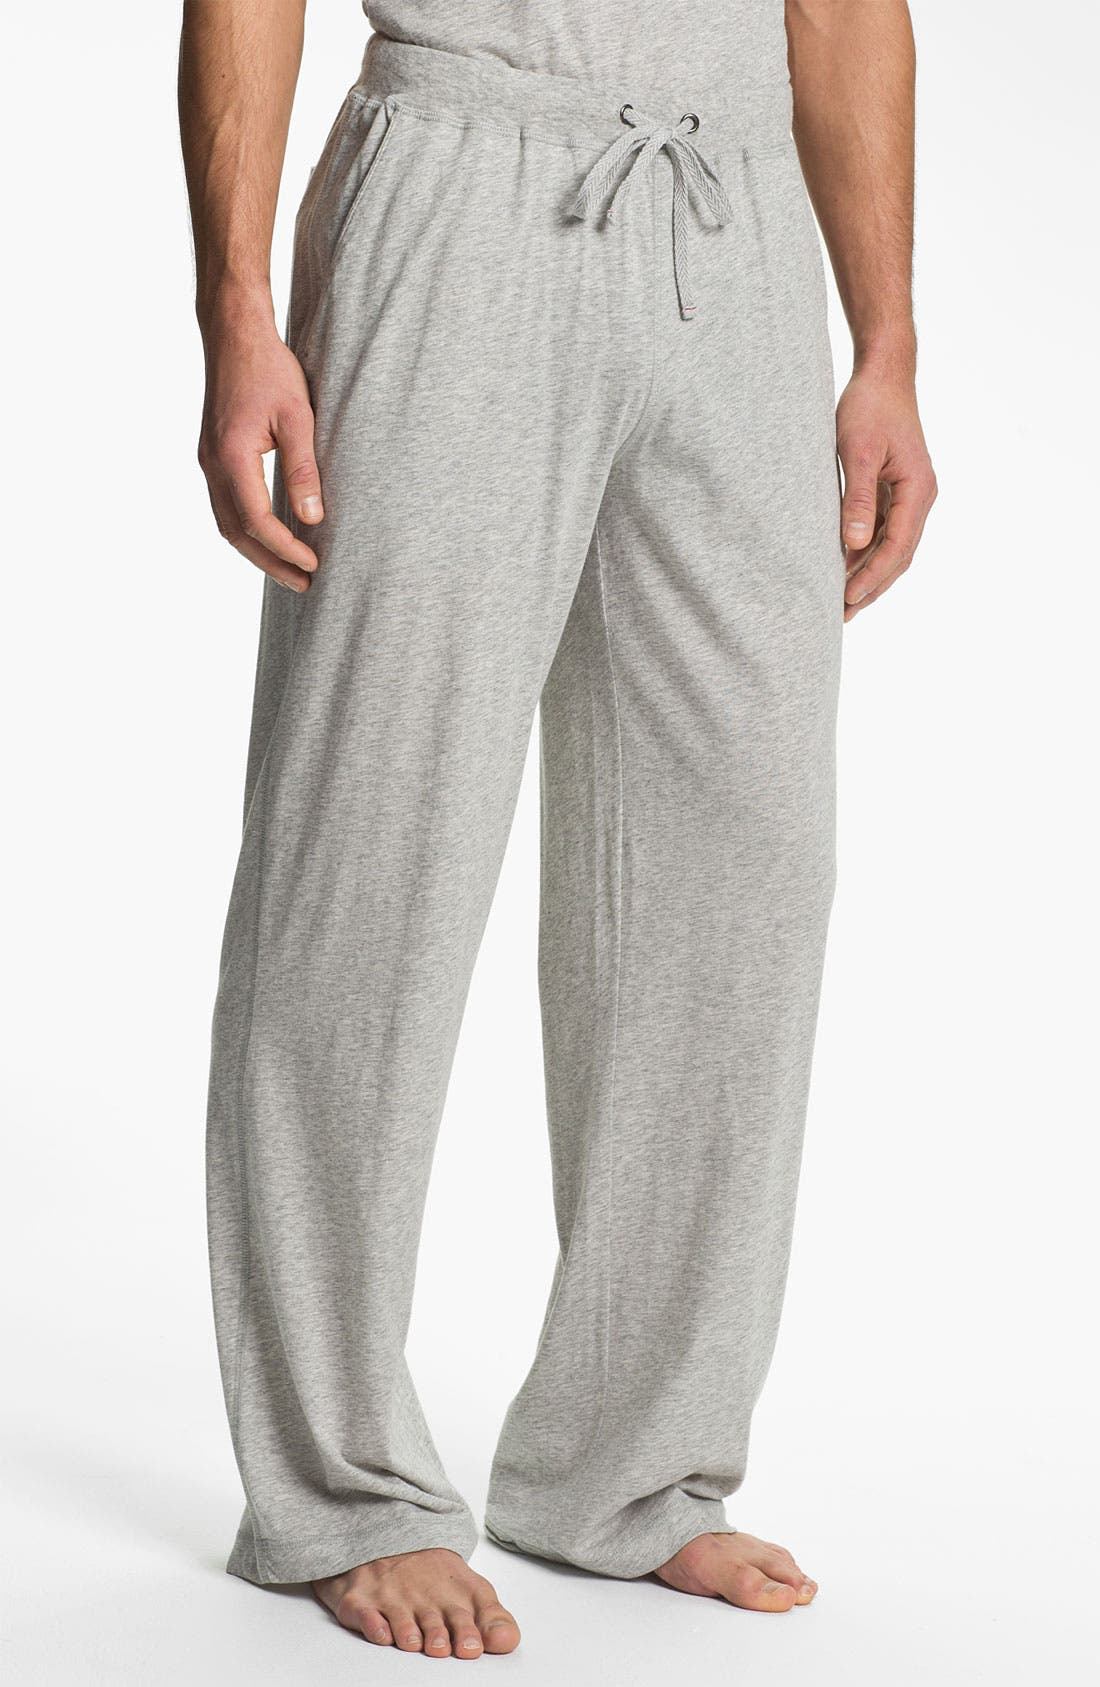 Daniel Buchler Peruvian Pima Lightweight Cotton Lounge Pants